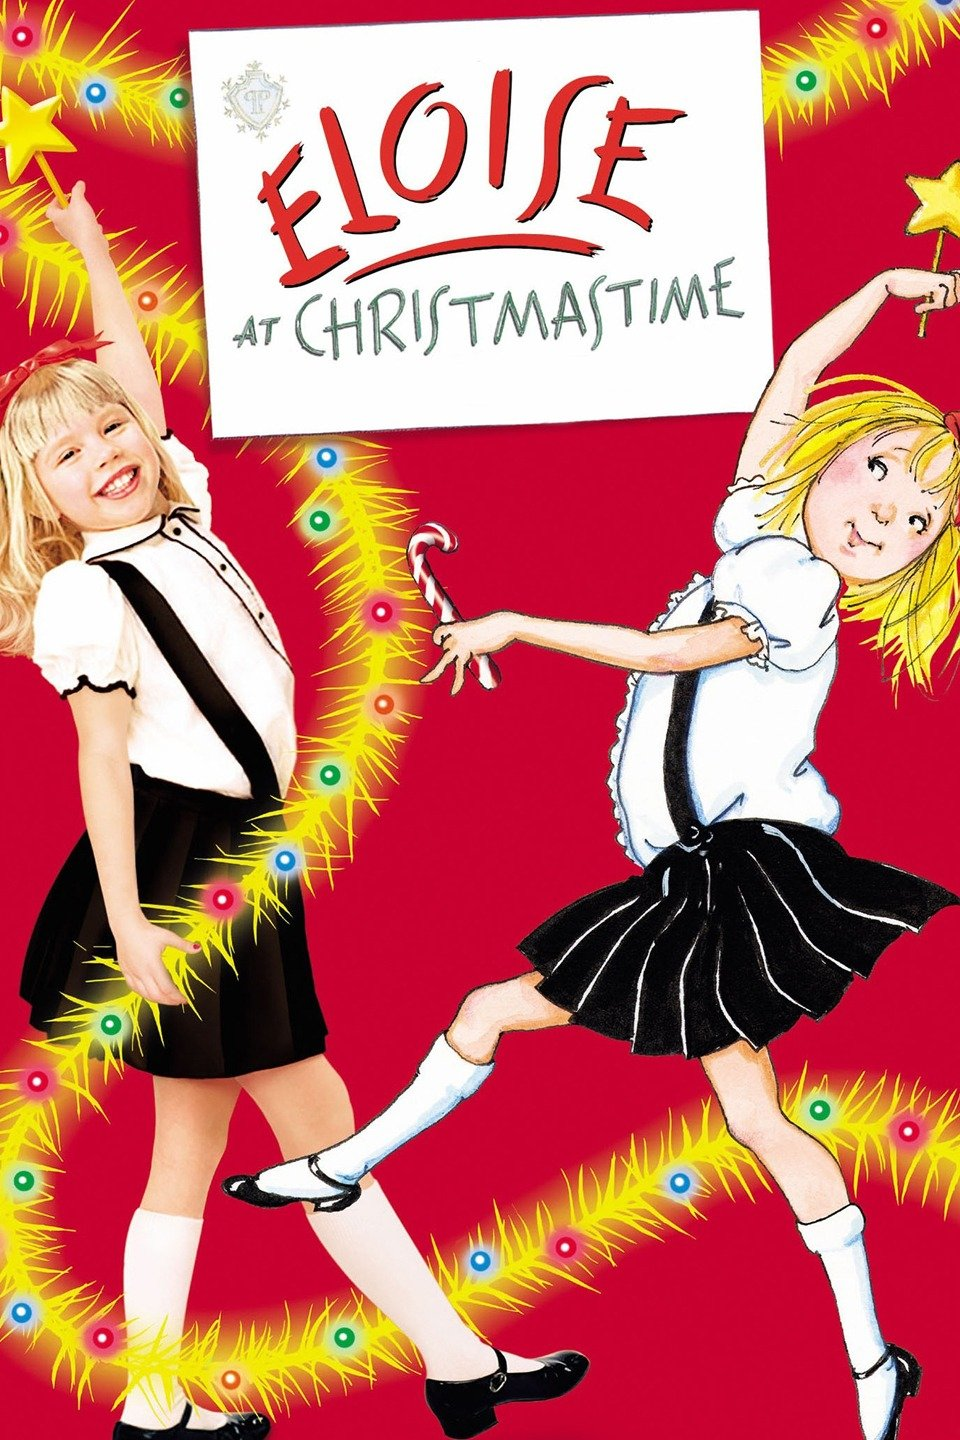 Eloise at Christmastime (2003)